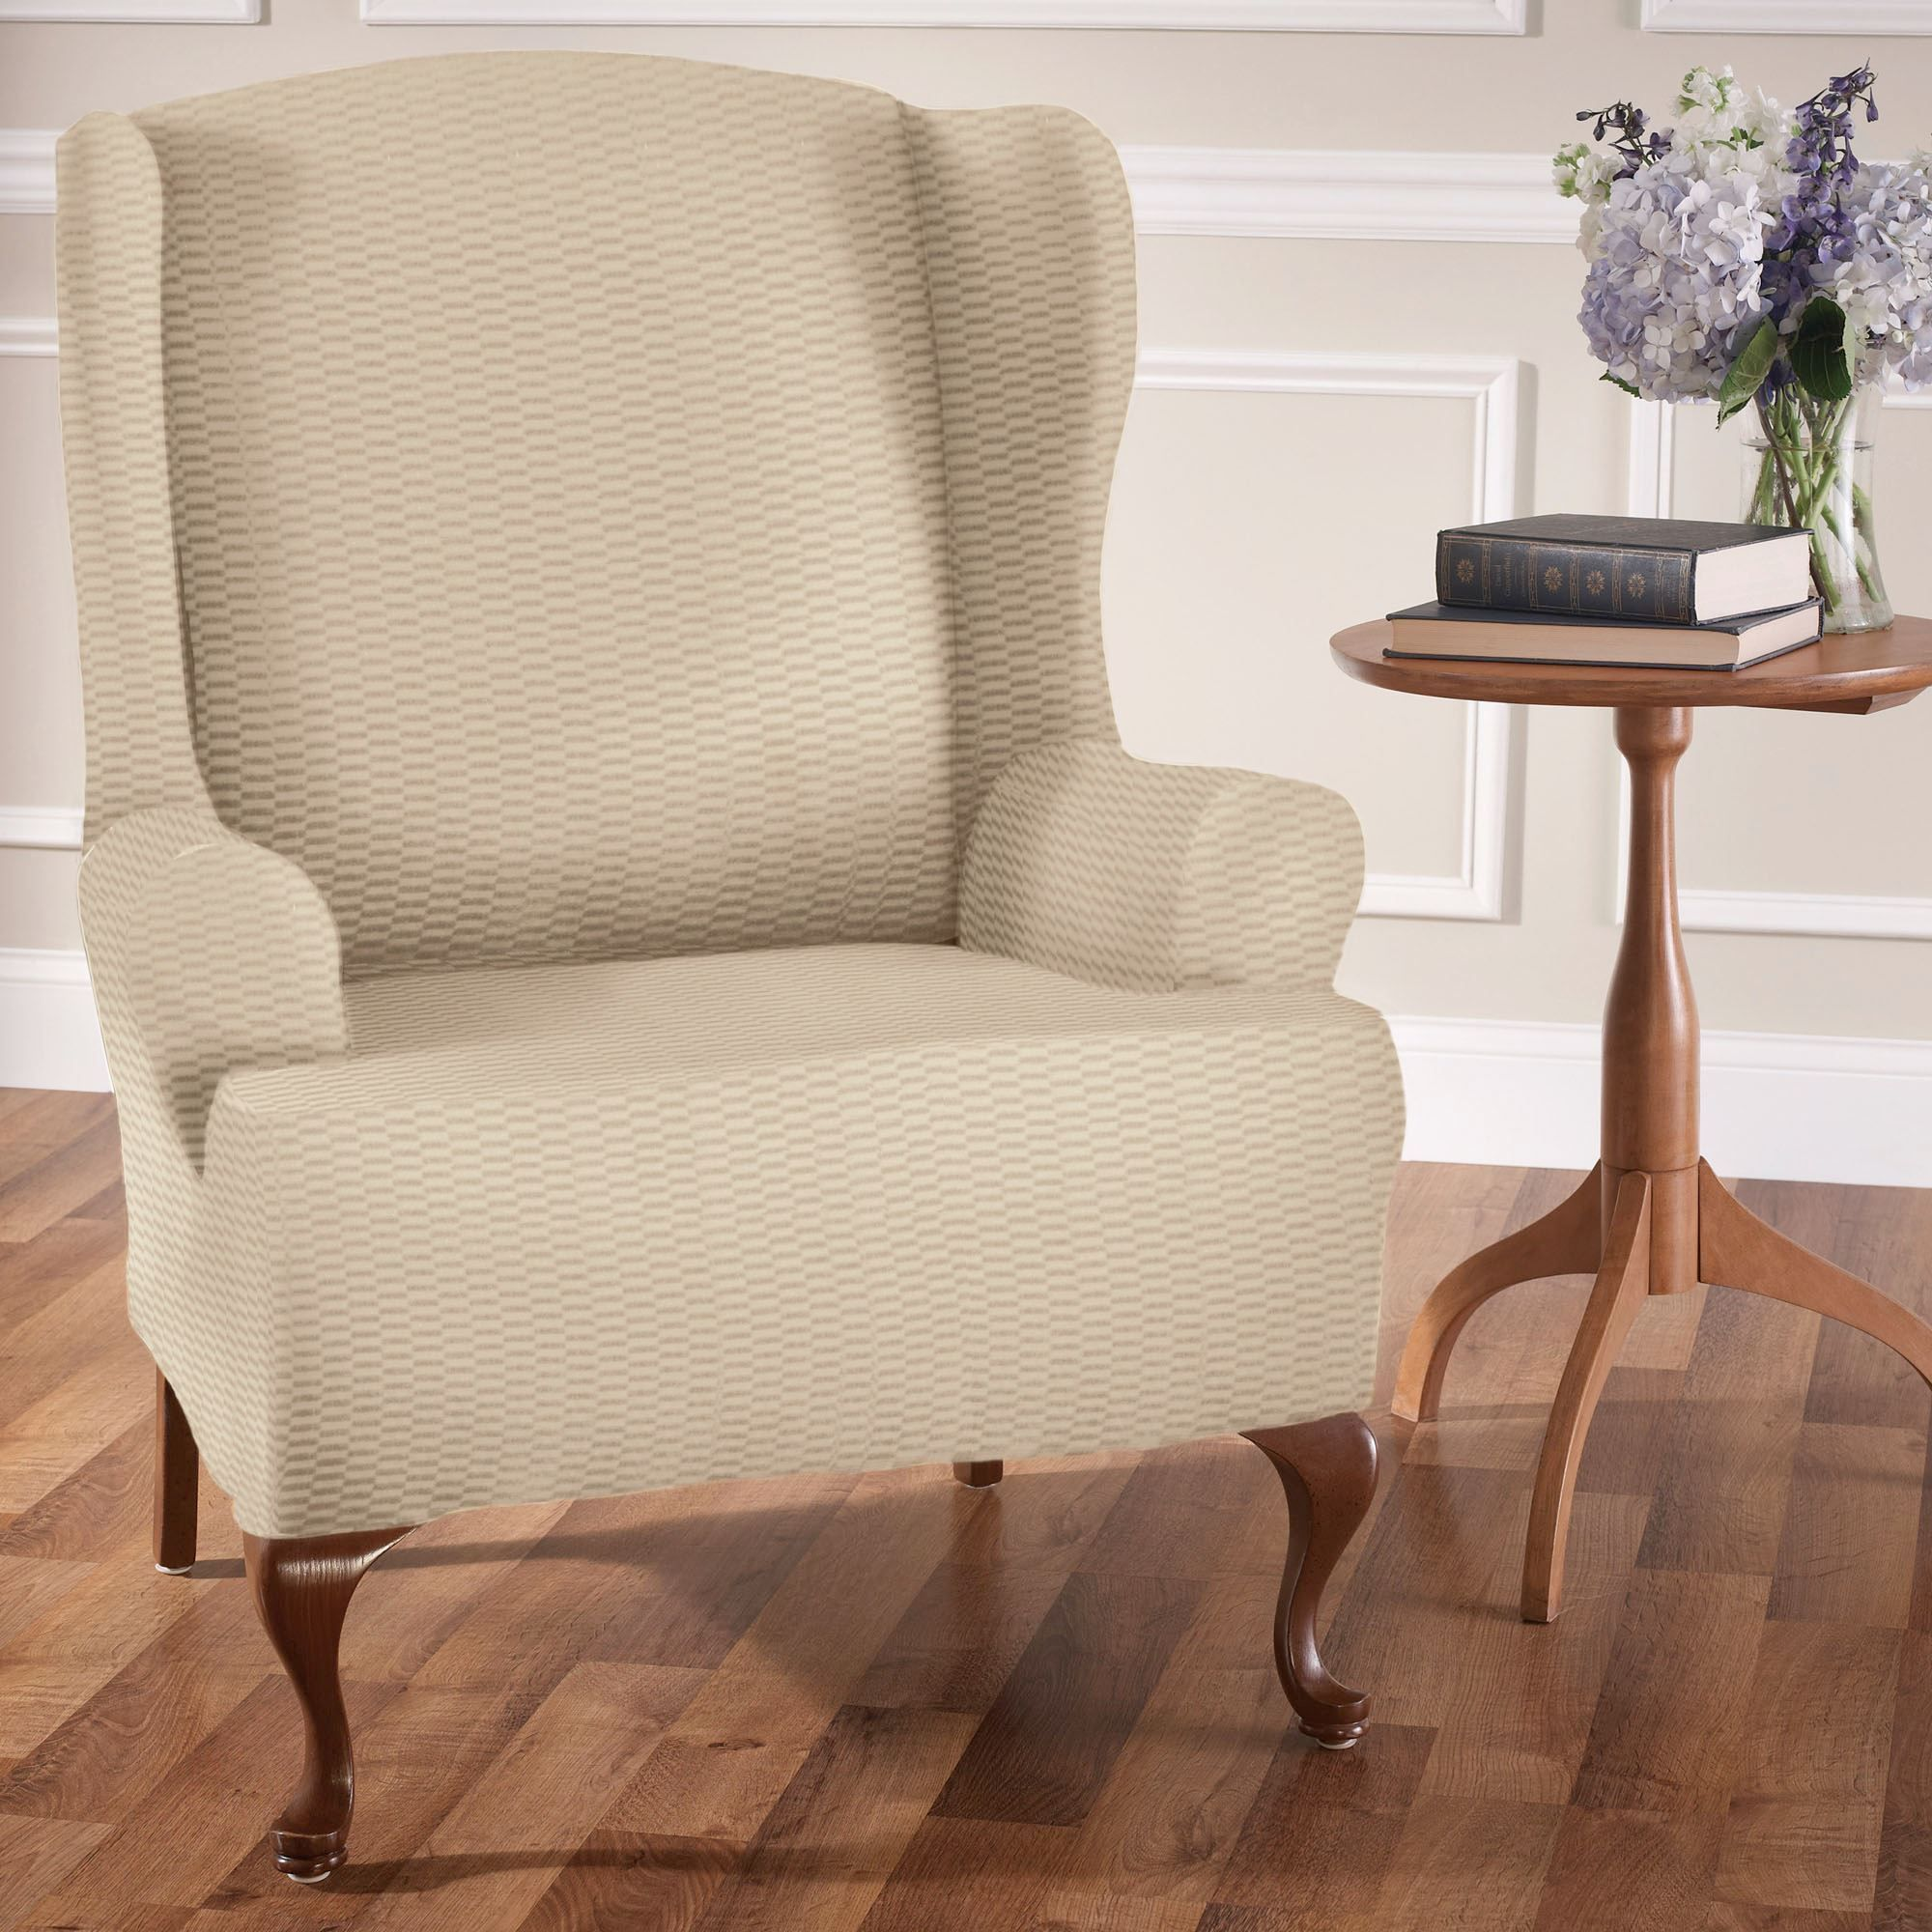 Raise The Bar Stretch Wing Chair Slipcovers Slipcovers For